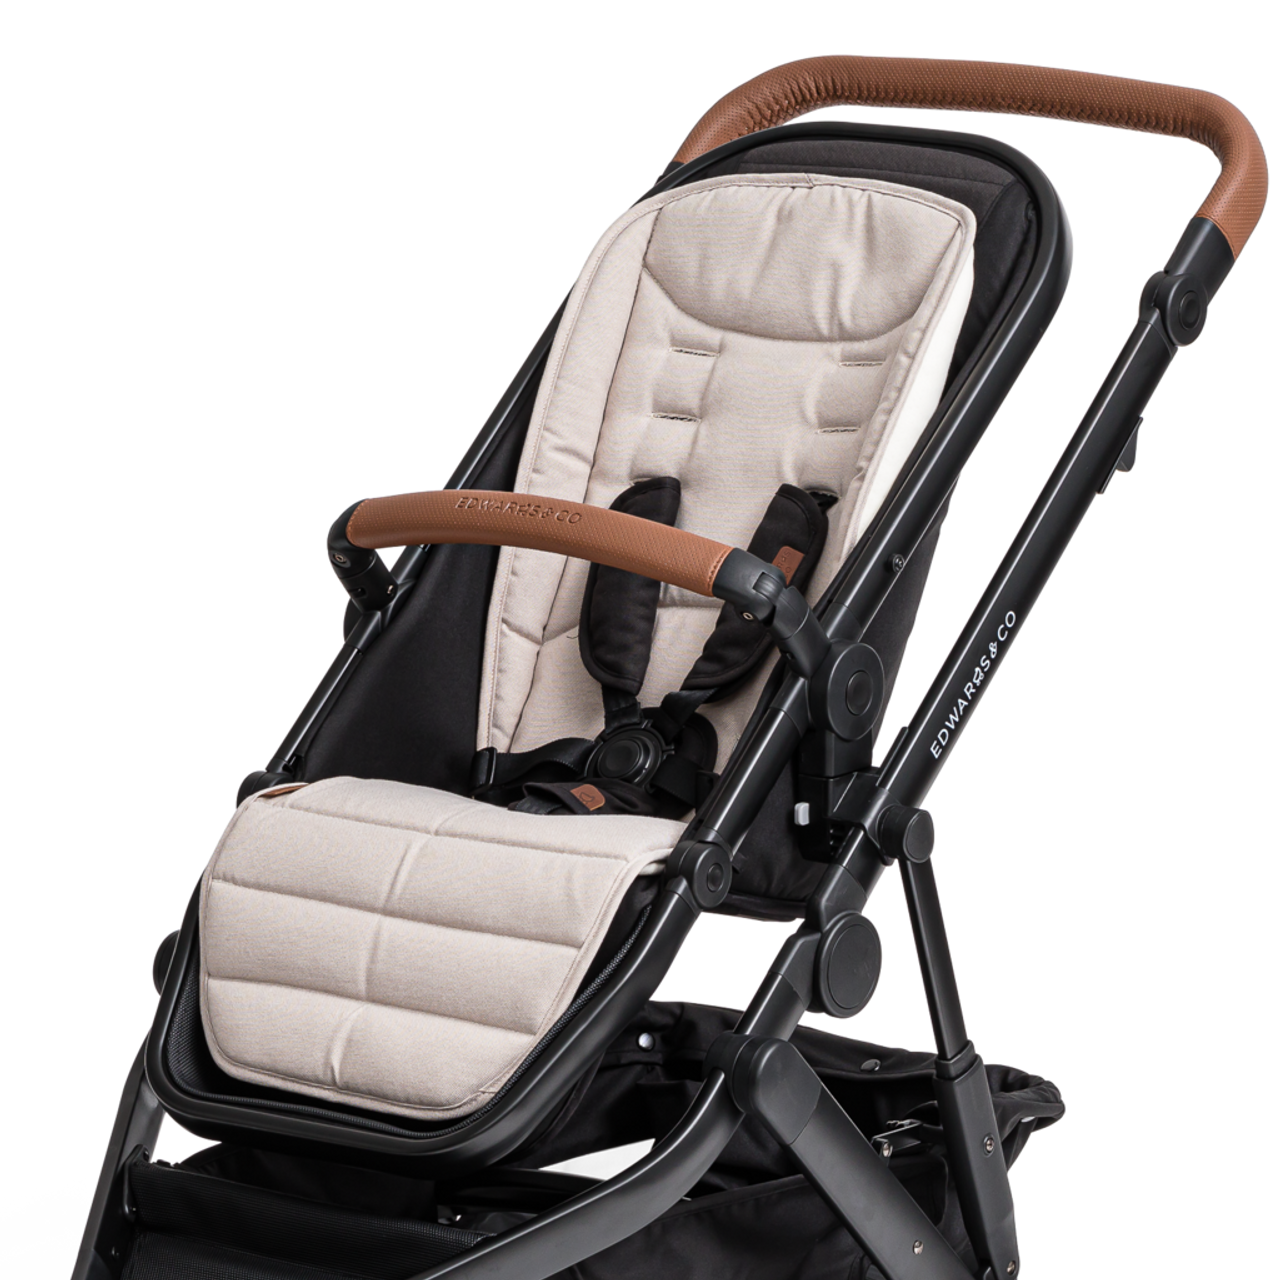 Edwards & Co Luxe Pram Liner at Baby Barn Discounts